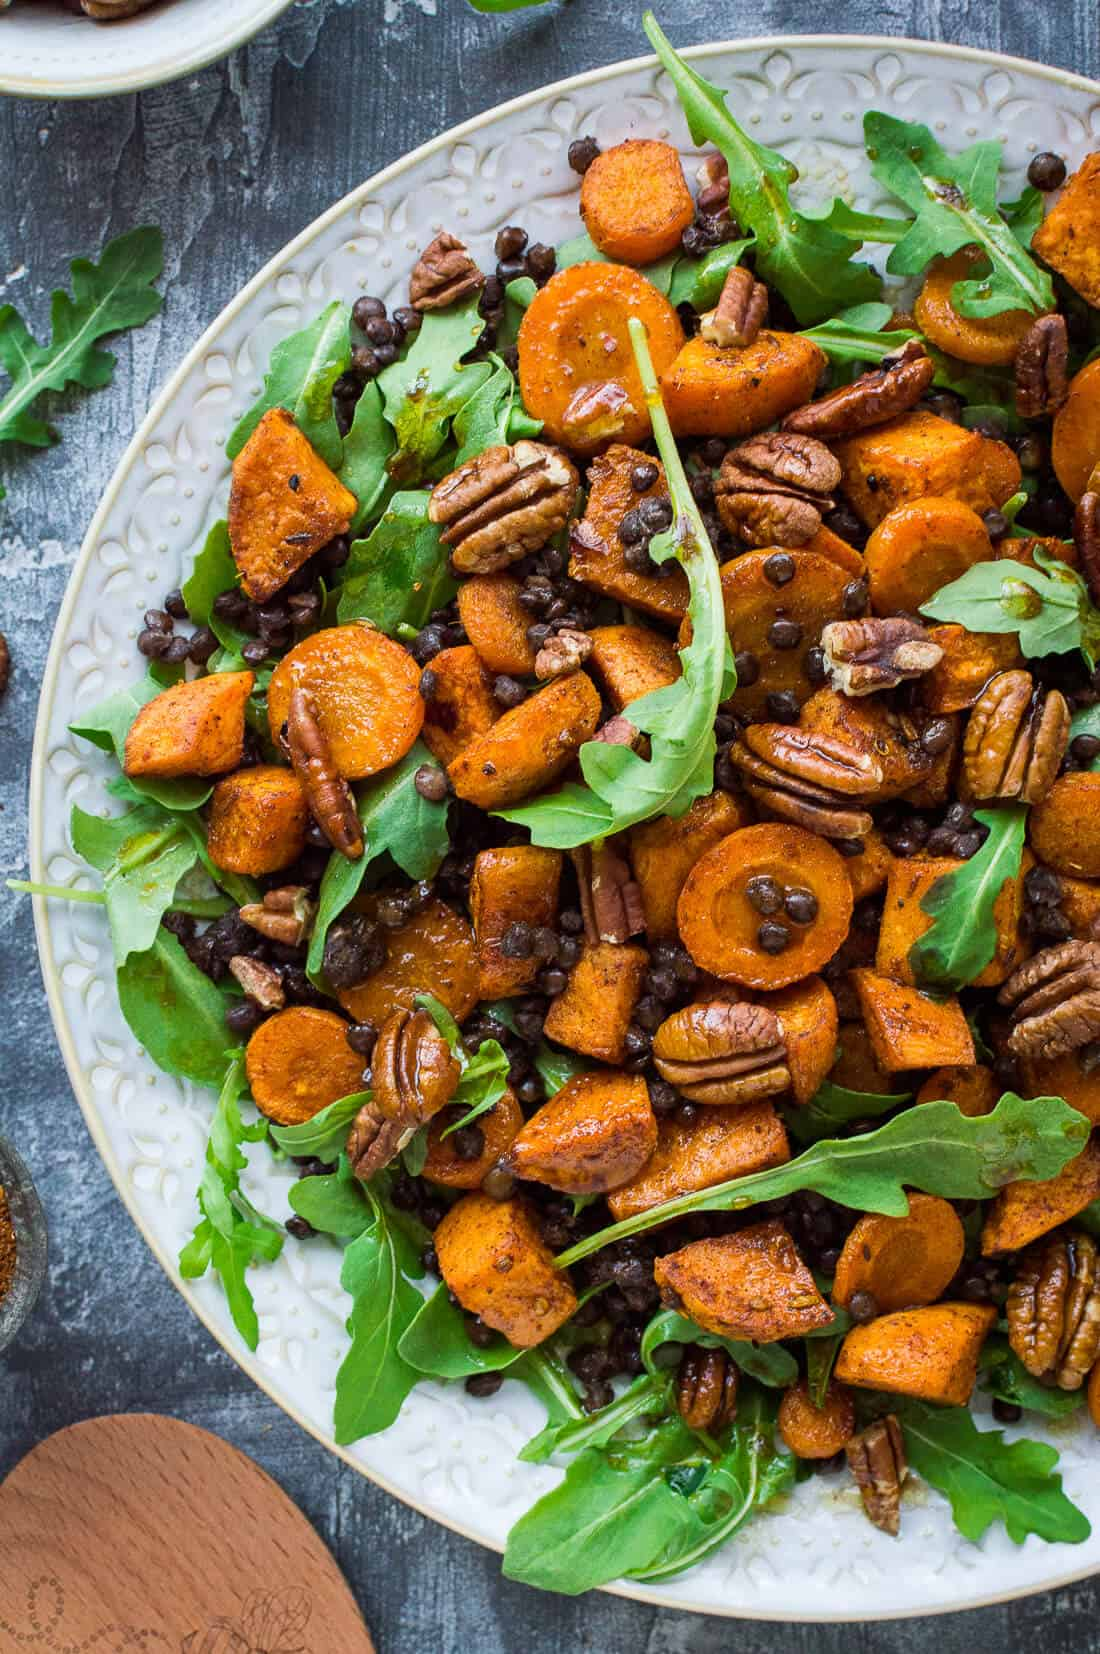 Roasted sweet potato, lentil and rocket salad – this hearty salad is filled with Ras el Hanout spiced roasted sweet potato and carrot, puy lentils, rocket  (arugula) and toasted pecans. #vegan #salad #healthy